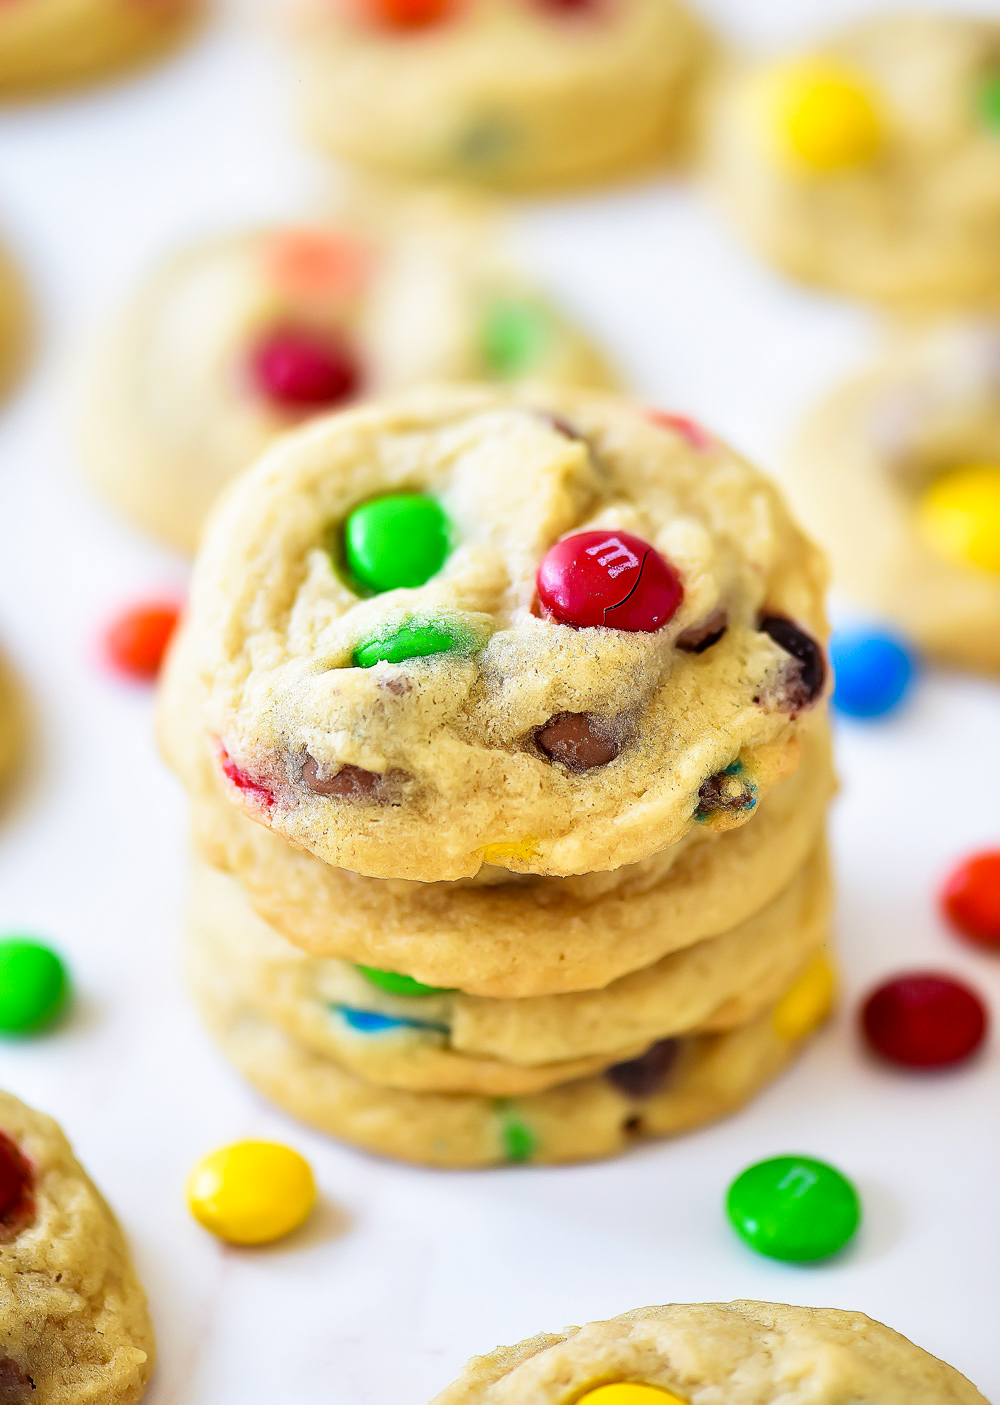 These cookies are so soft and chewy and filled with chocolate chips and rainbow M&M's. Life-in-the-Lofthouse.com